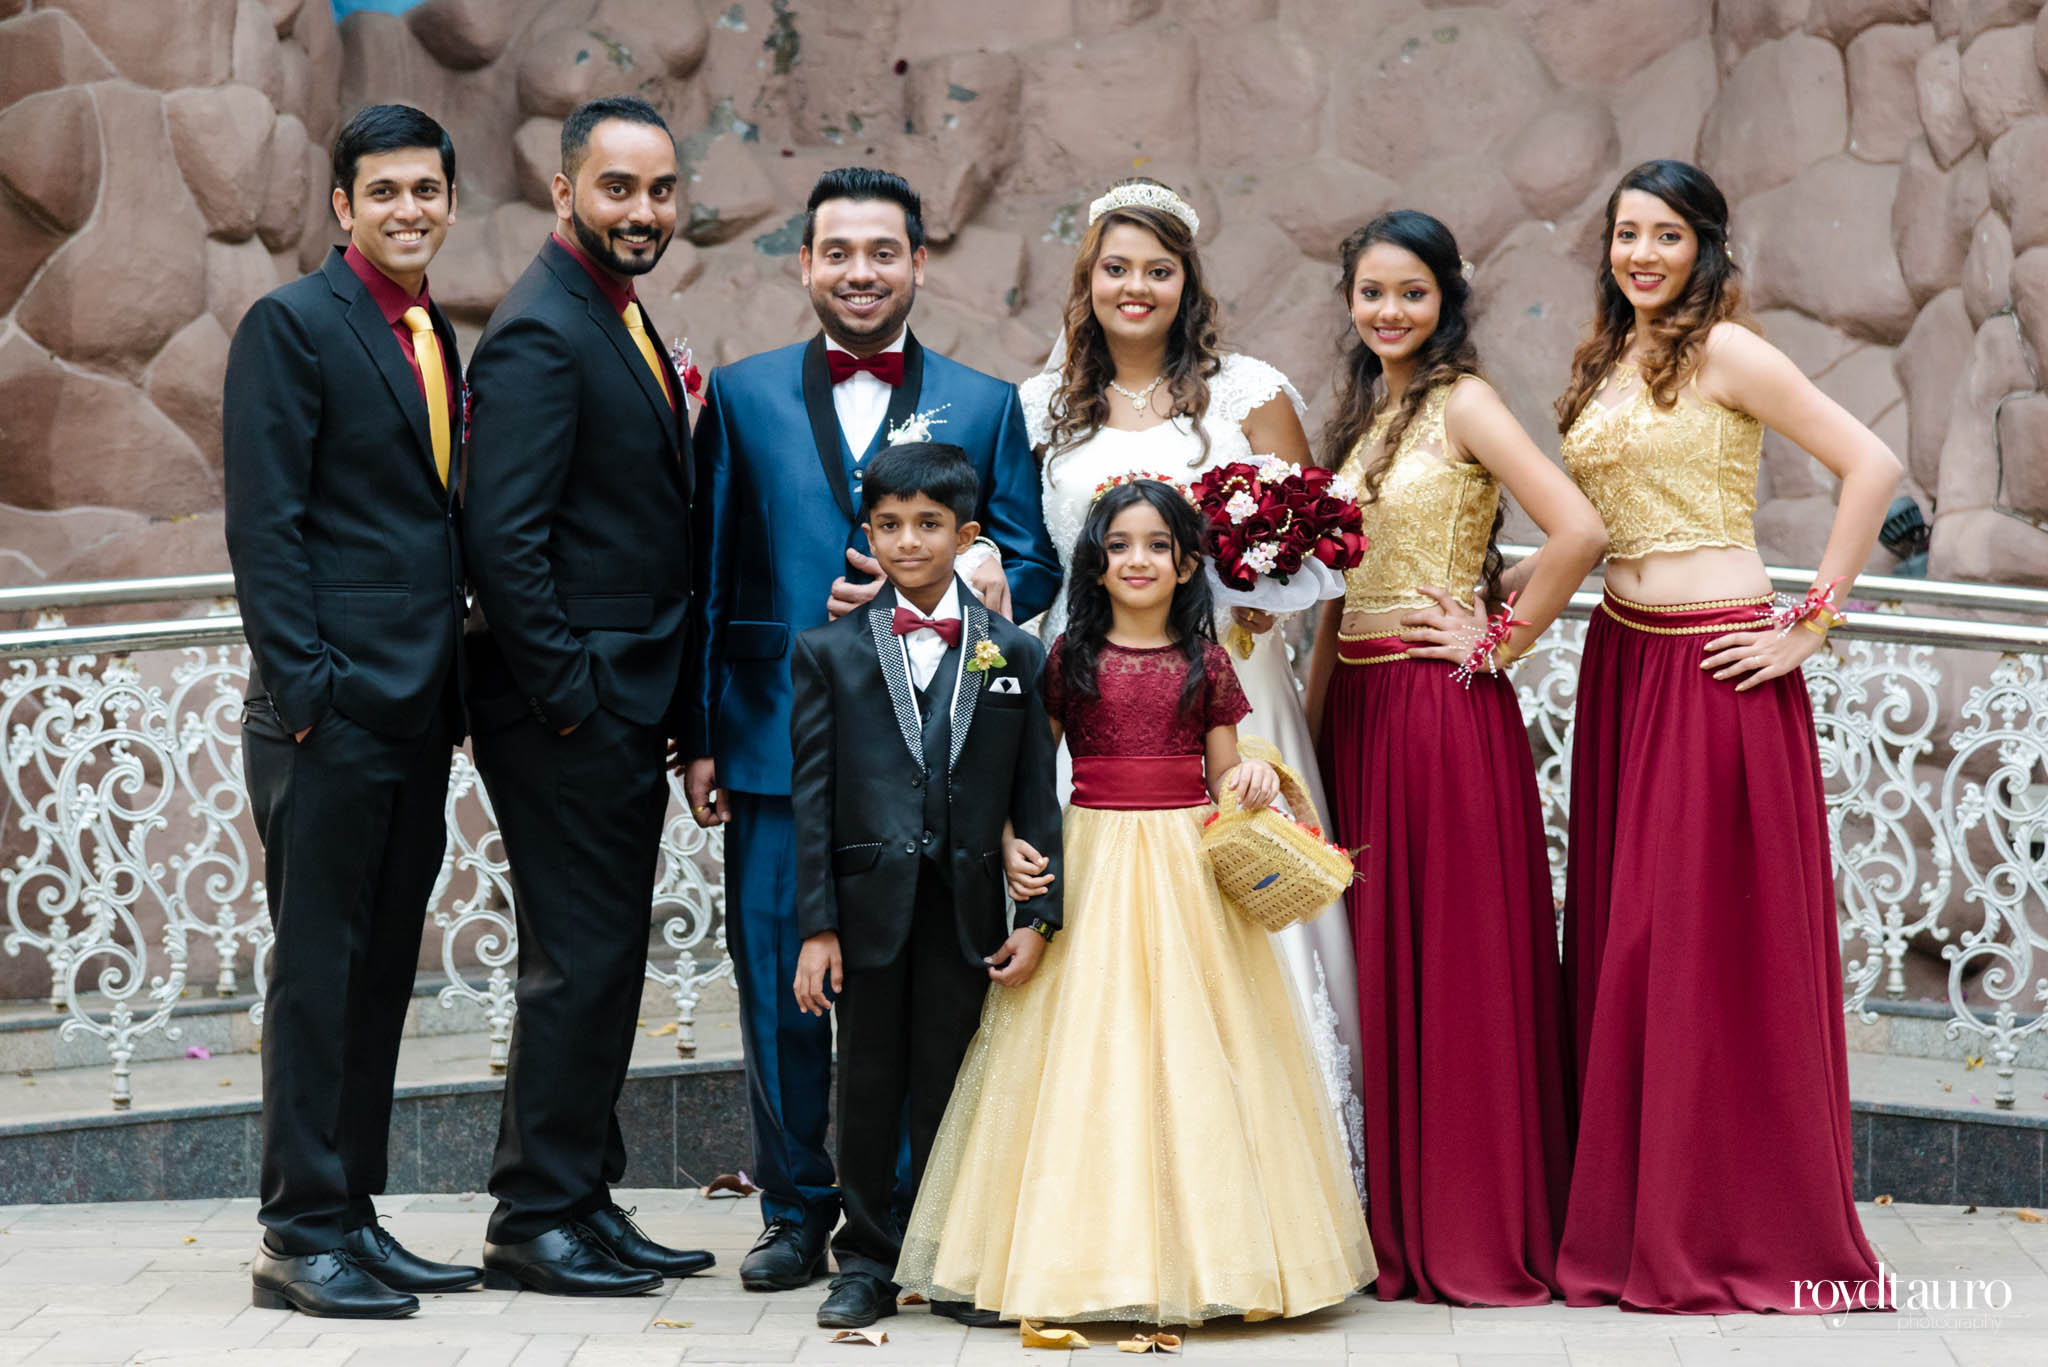 Harman-Glynnis-Post-Wedding-33.jpg